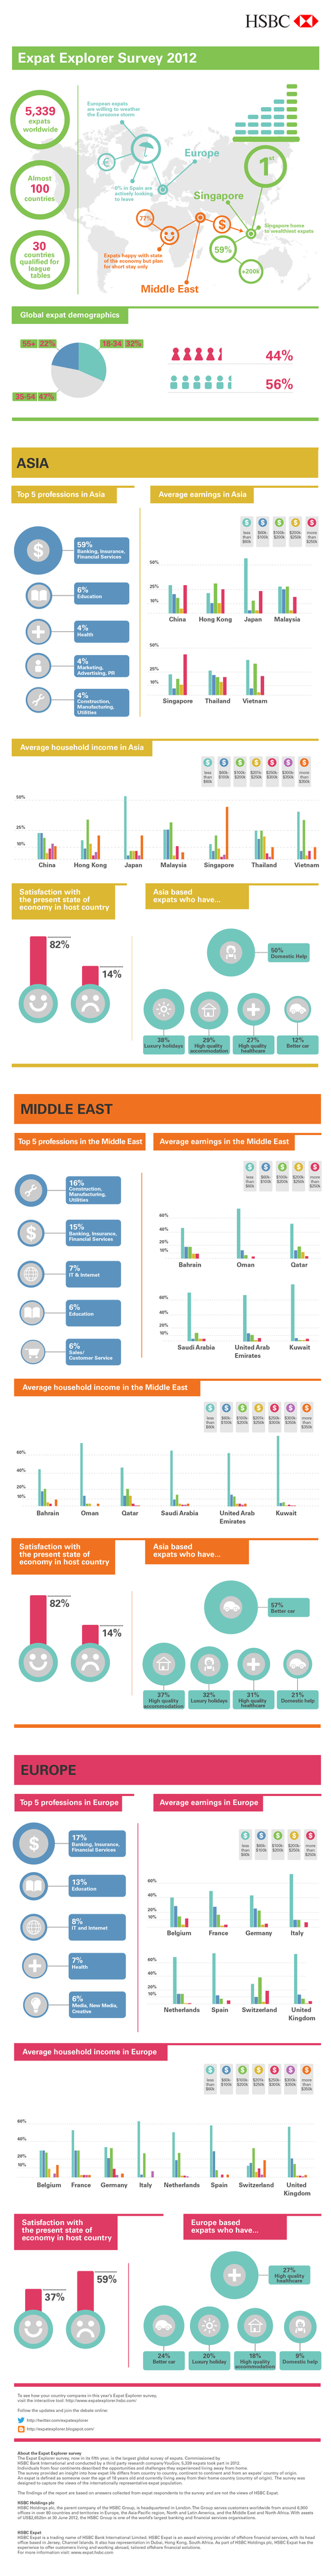 HSBC Expat Expat Explorer 2012 findings full_infographic_final